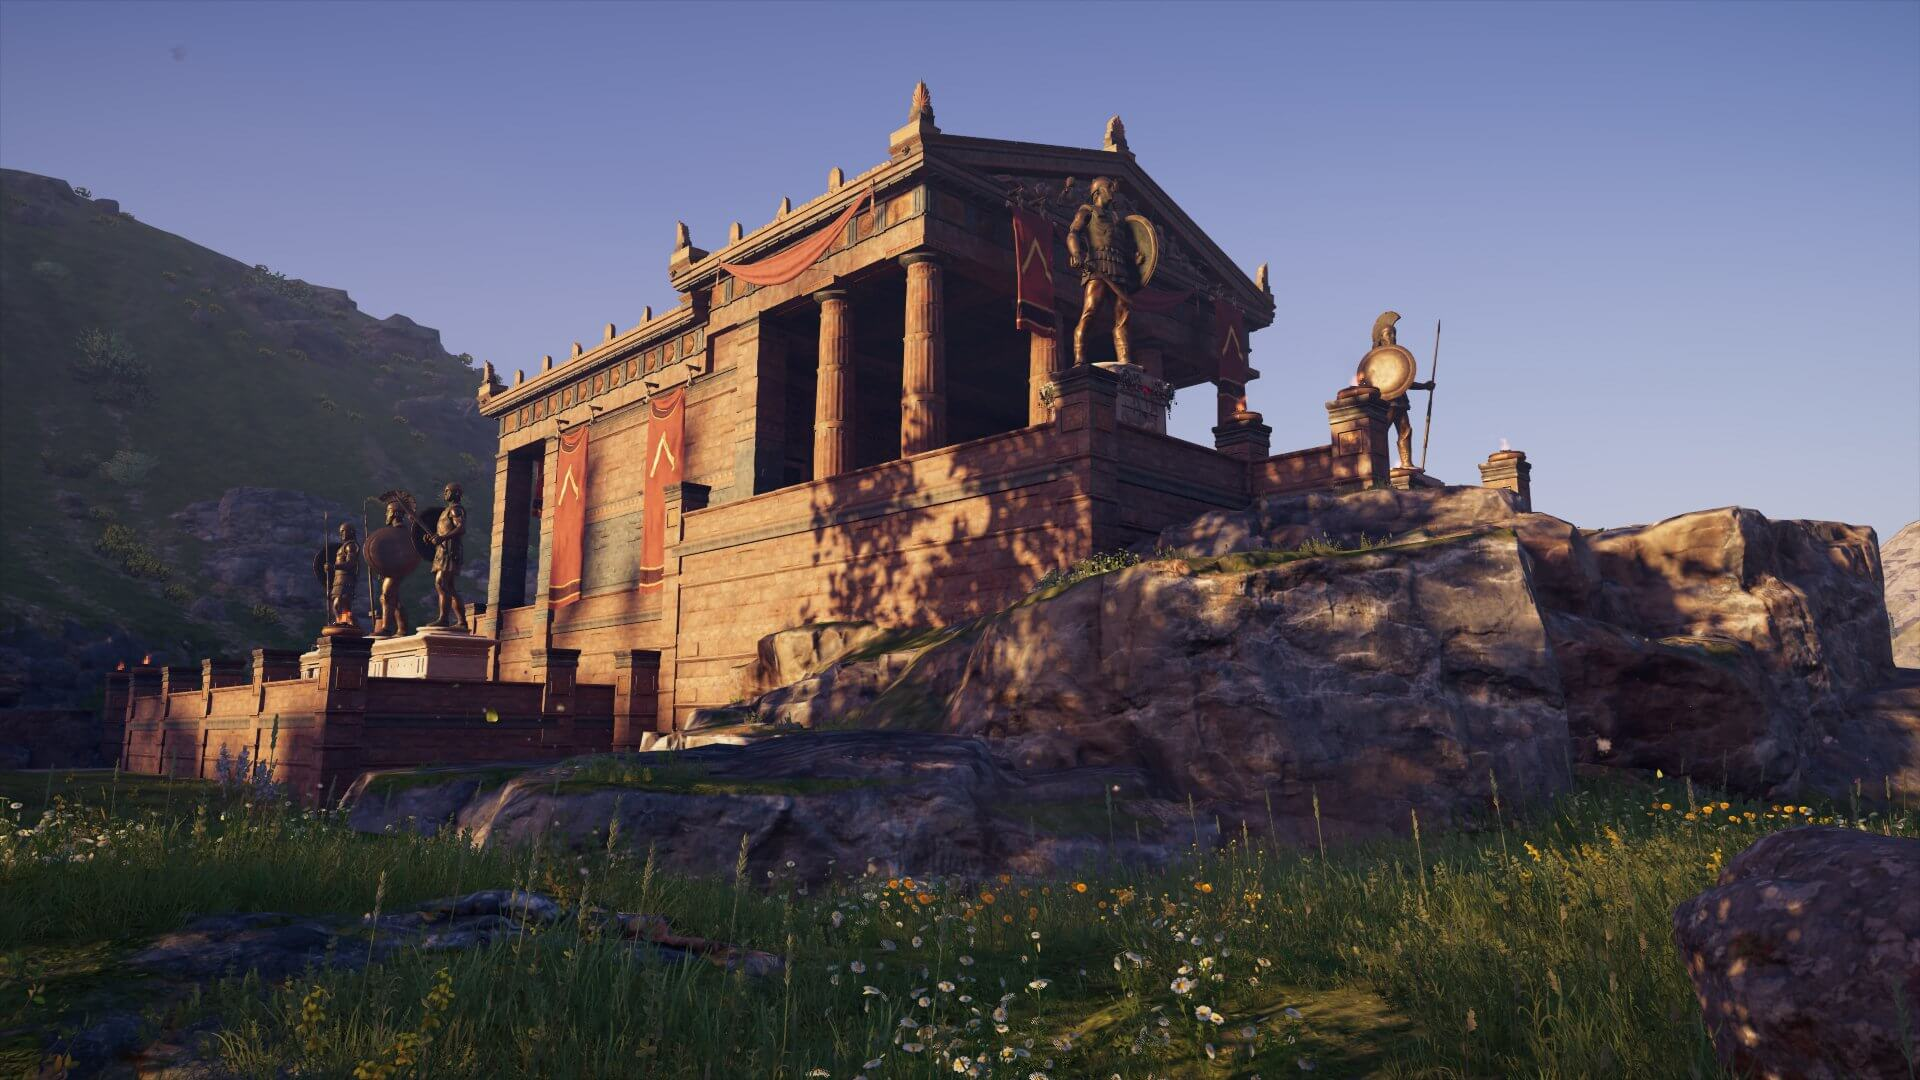 Assassins Creed® Odyssey  70 - Assassin's Creed Odyssey: confira o guia de dicas e truques do game